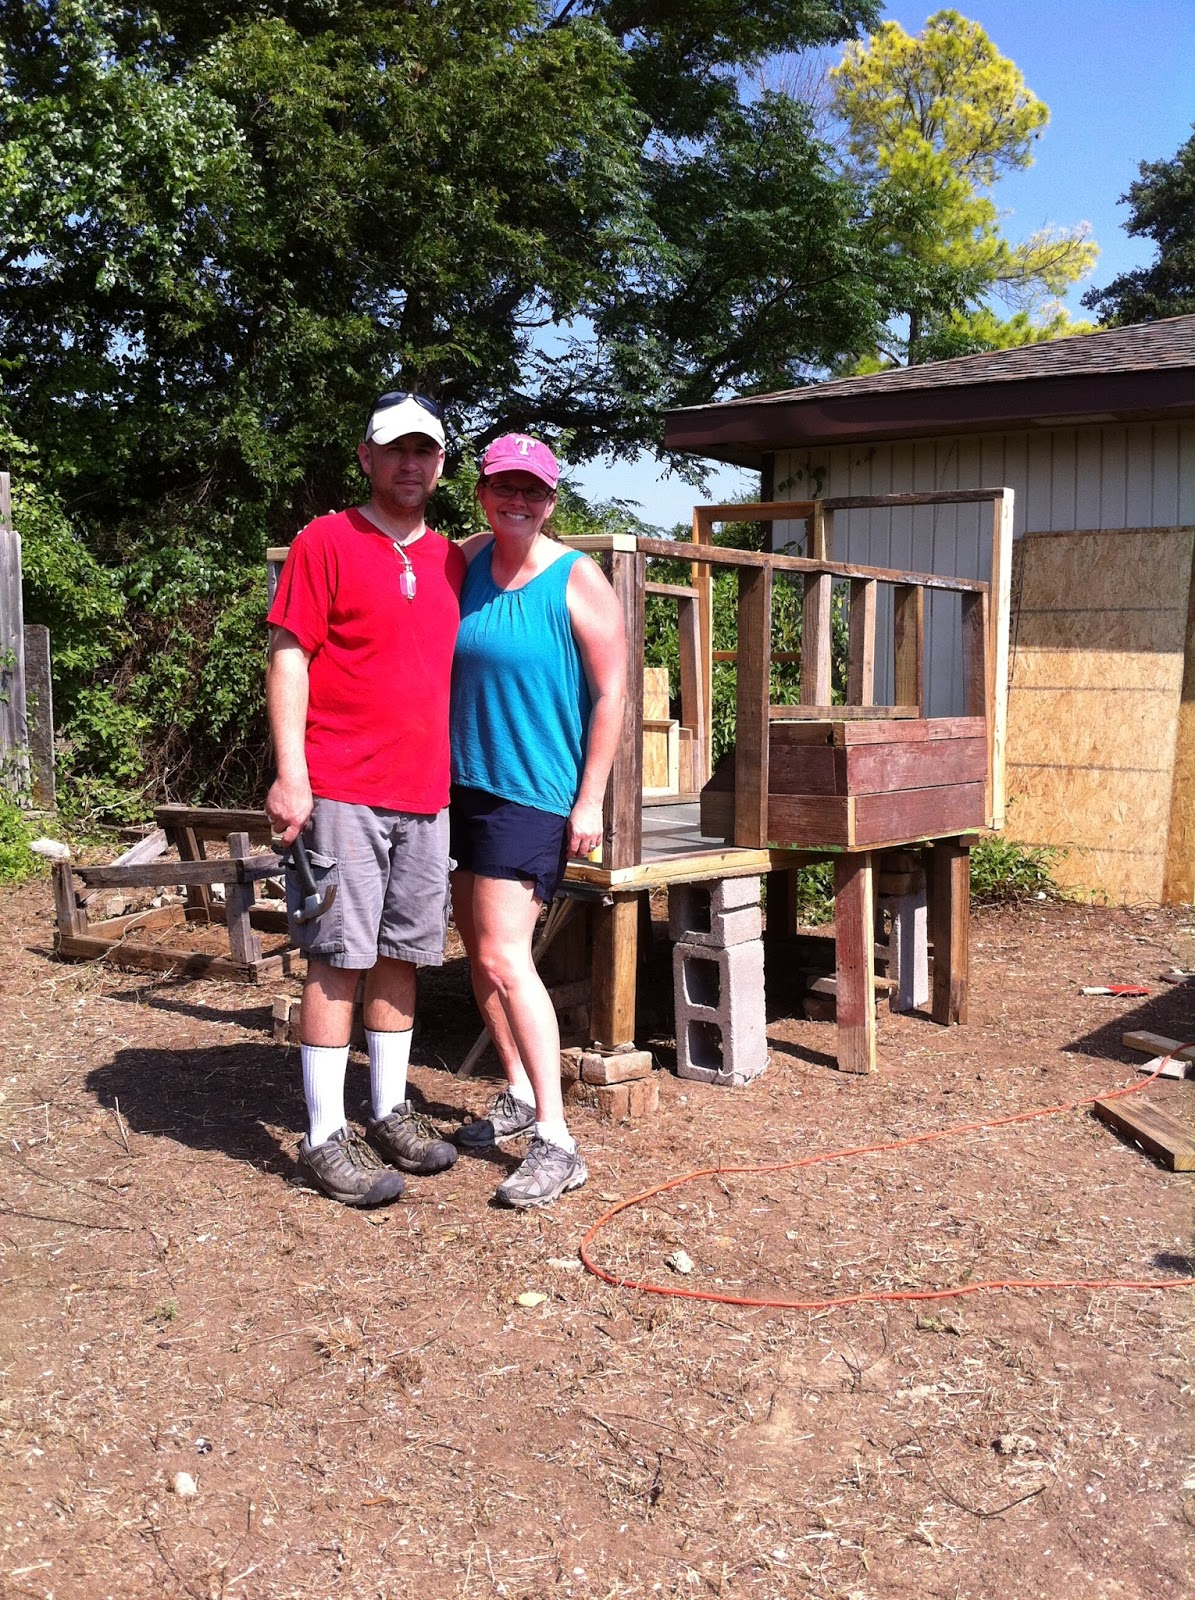 Making home our cheap blueprint less diy chicken coop our cheap blueprint less diy chicken coop malvernweather Choice Image